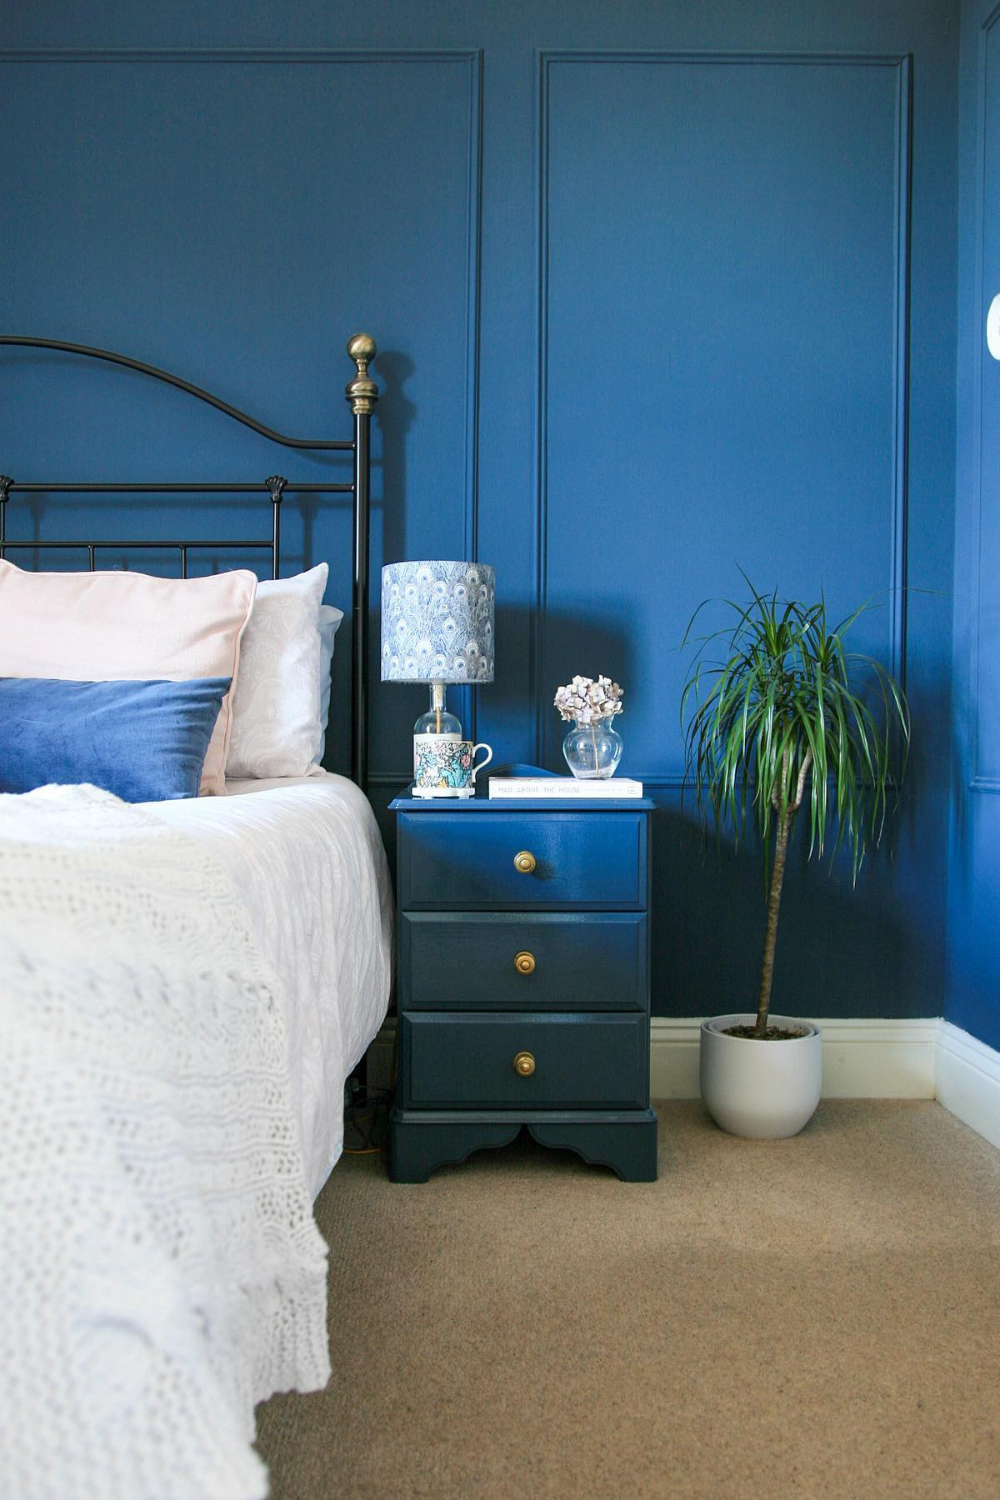 10 DIY Projects in Lockdown - bedside up cycled in Stiffkey Blue and with vintage drawer handles.